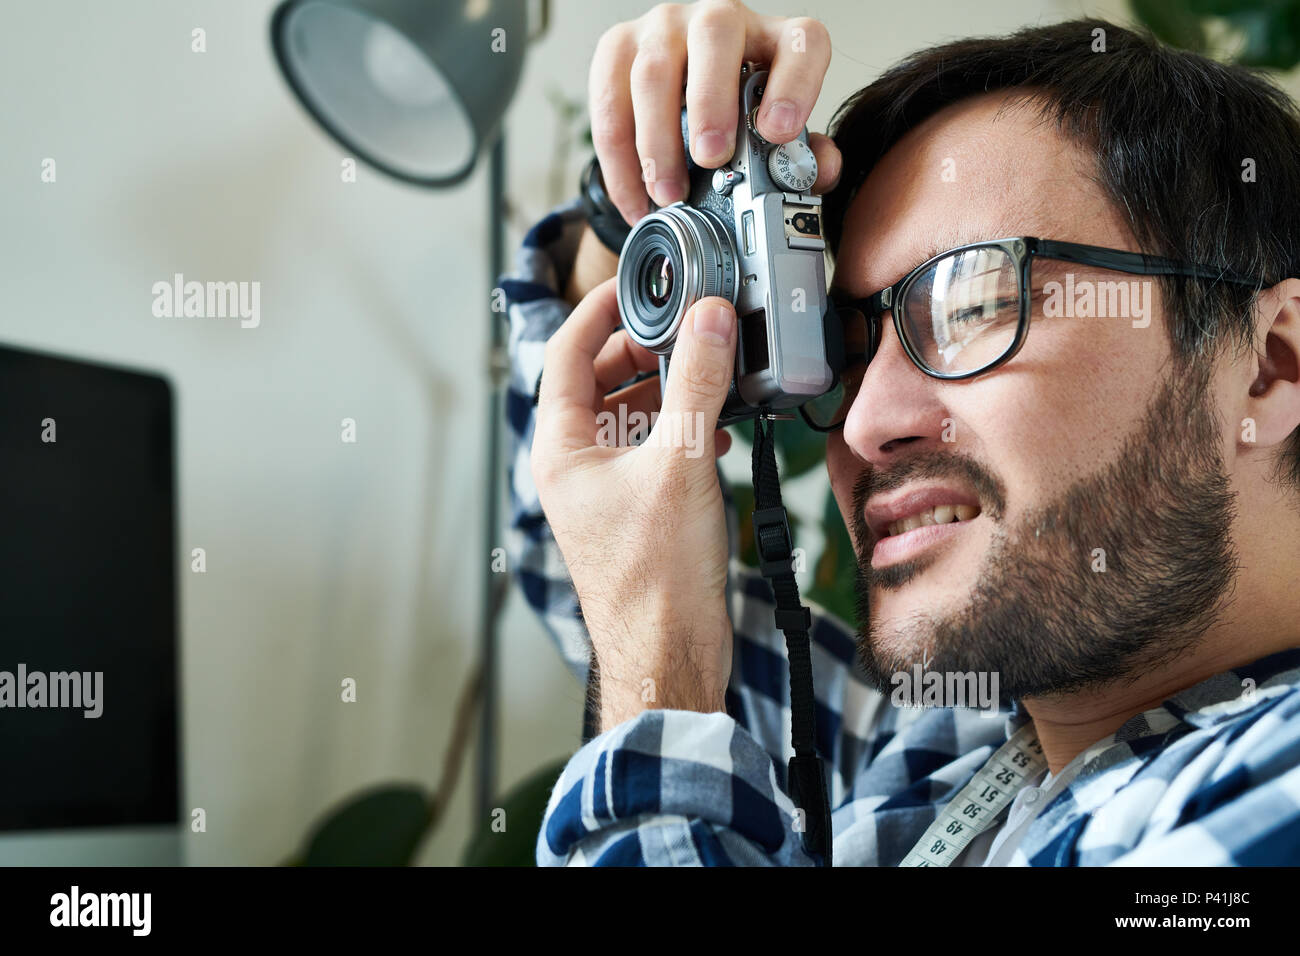 Man working with vintage camera - Stock Image